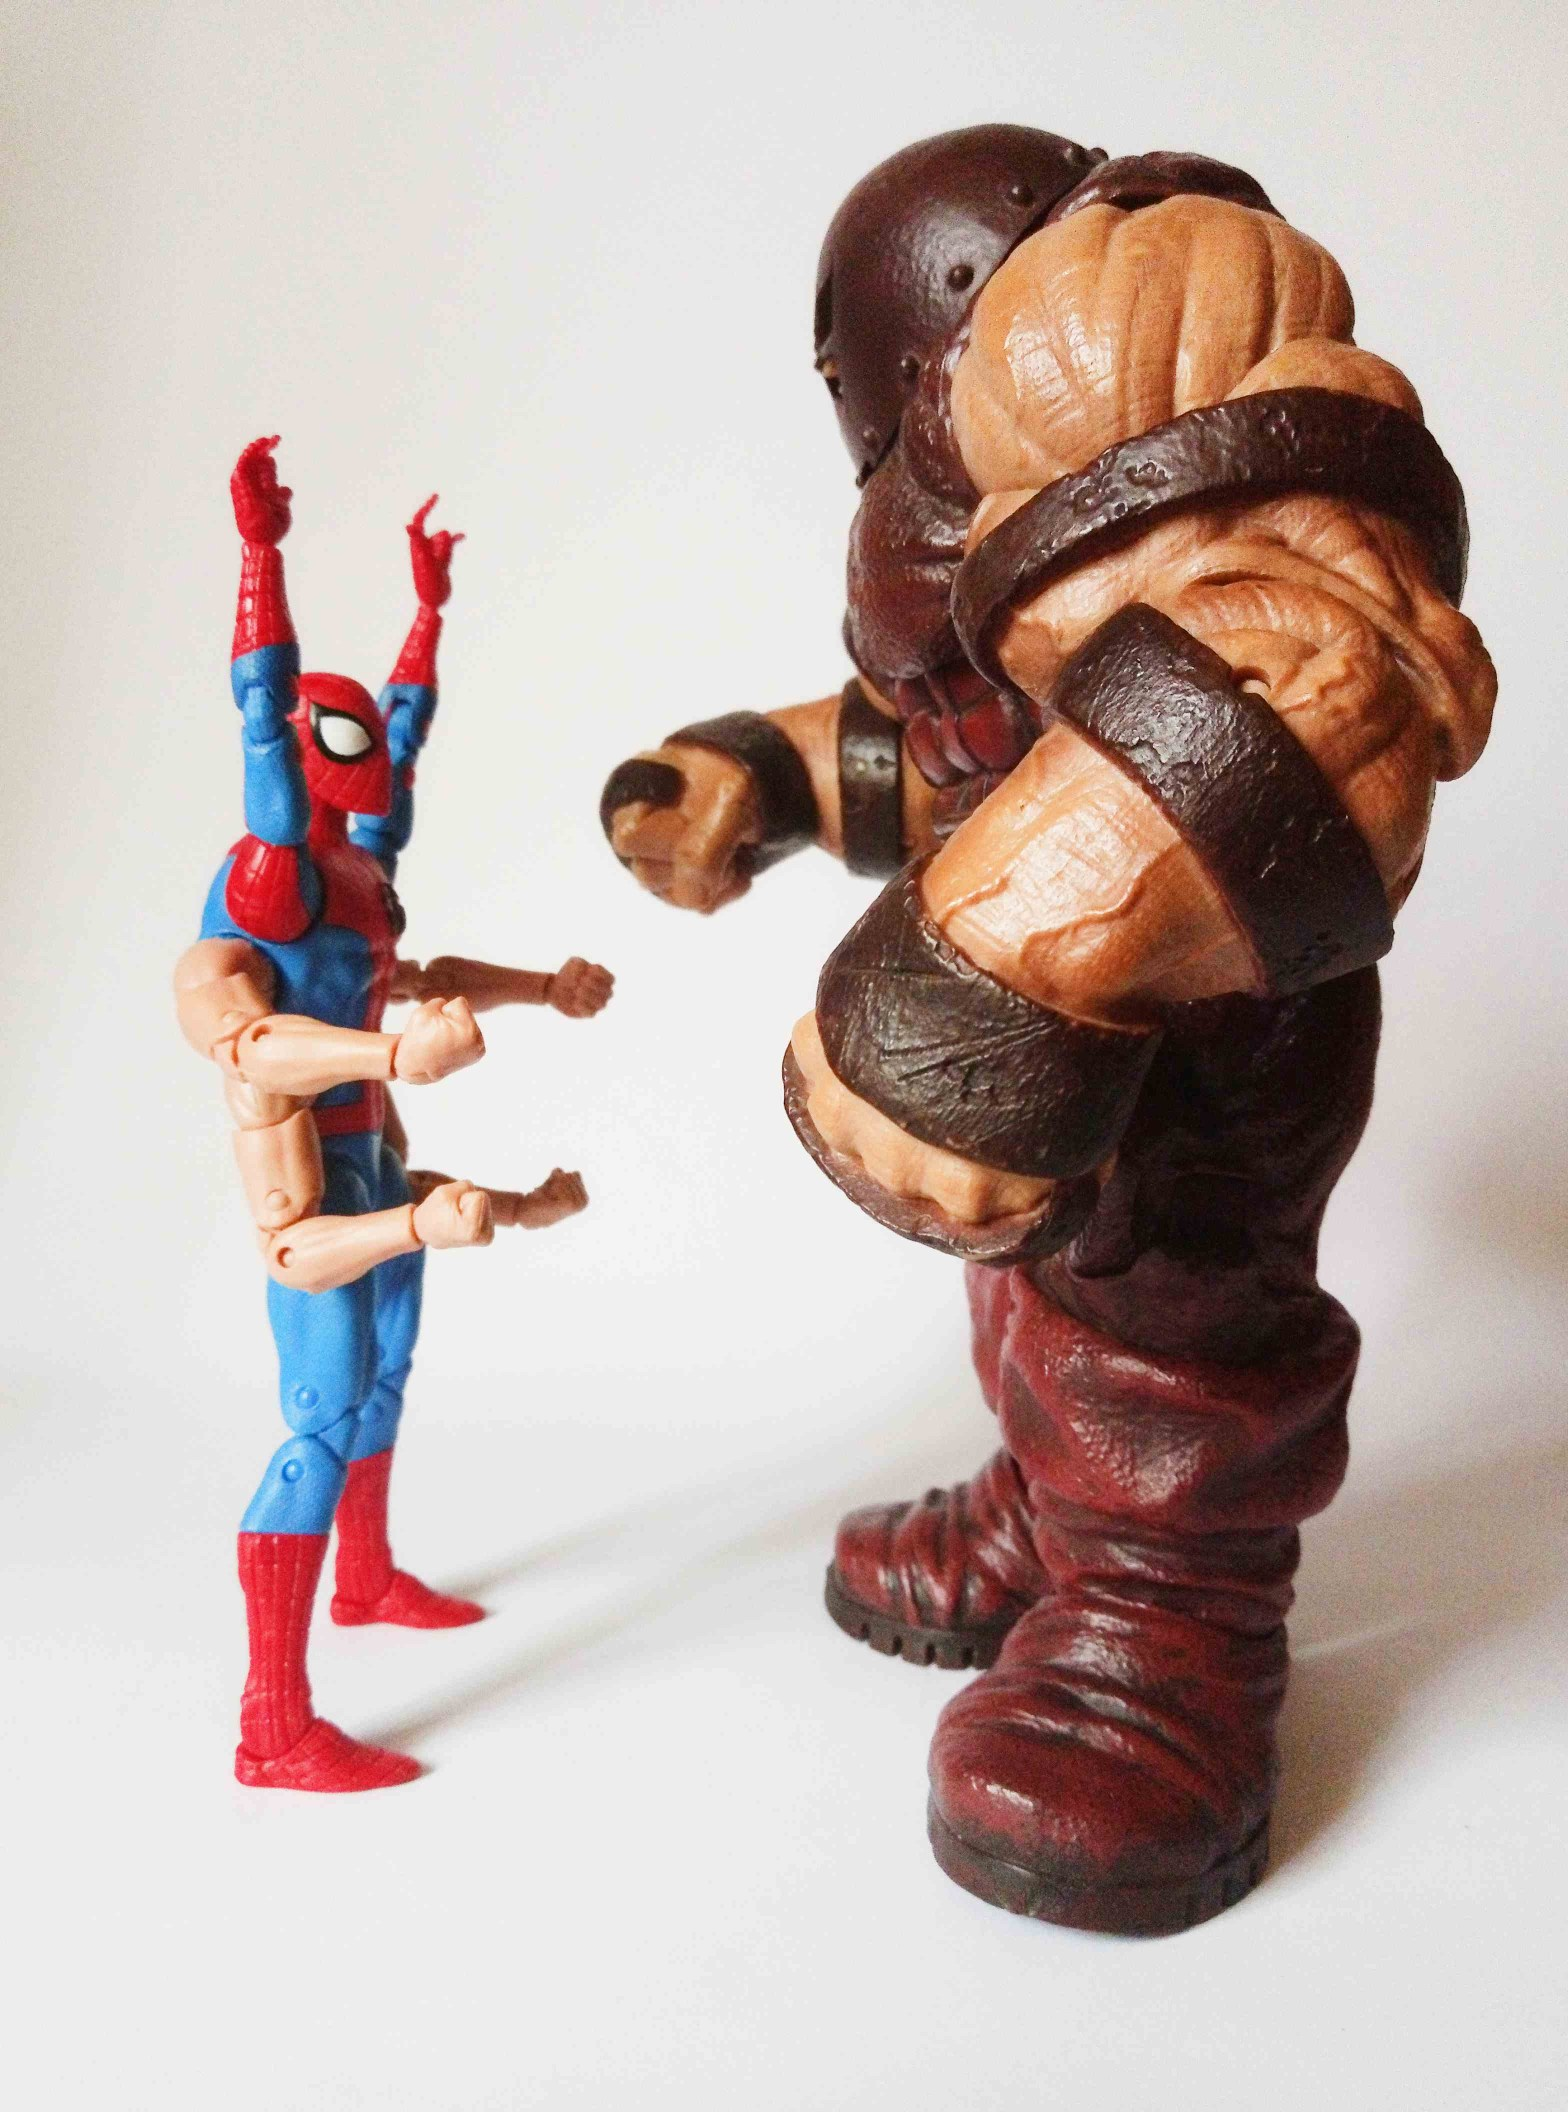 Marvel Legends Sixarms Spiderman vs. Marvel Select Juggernaut